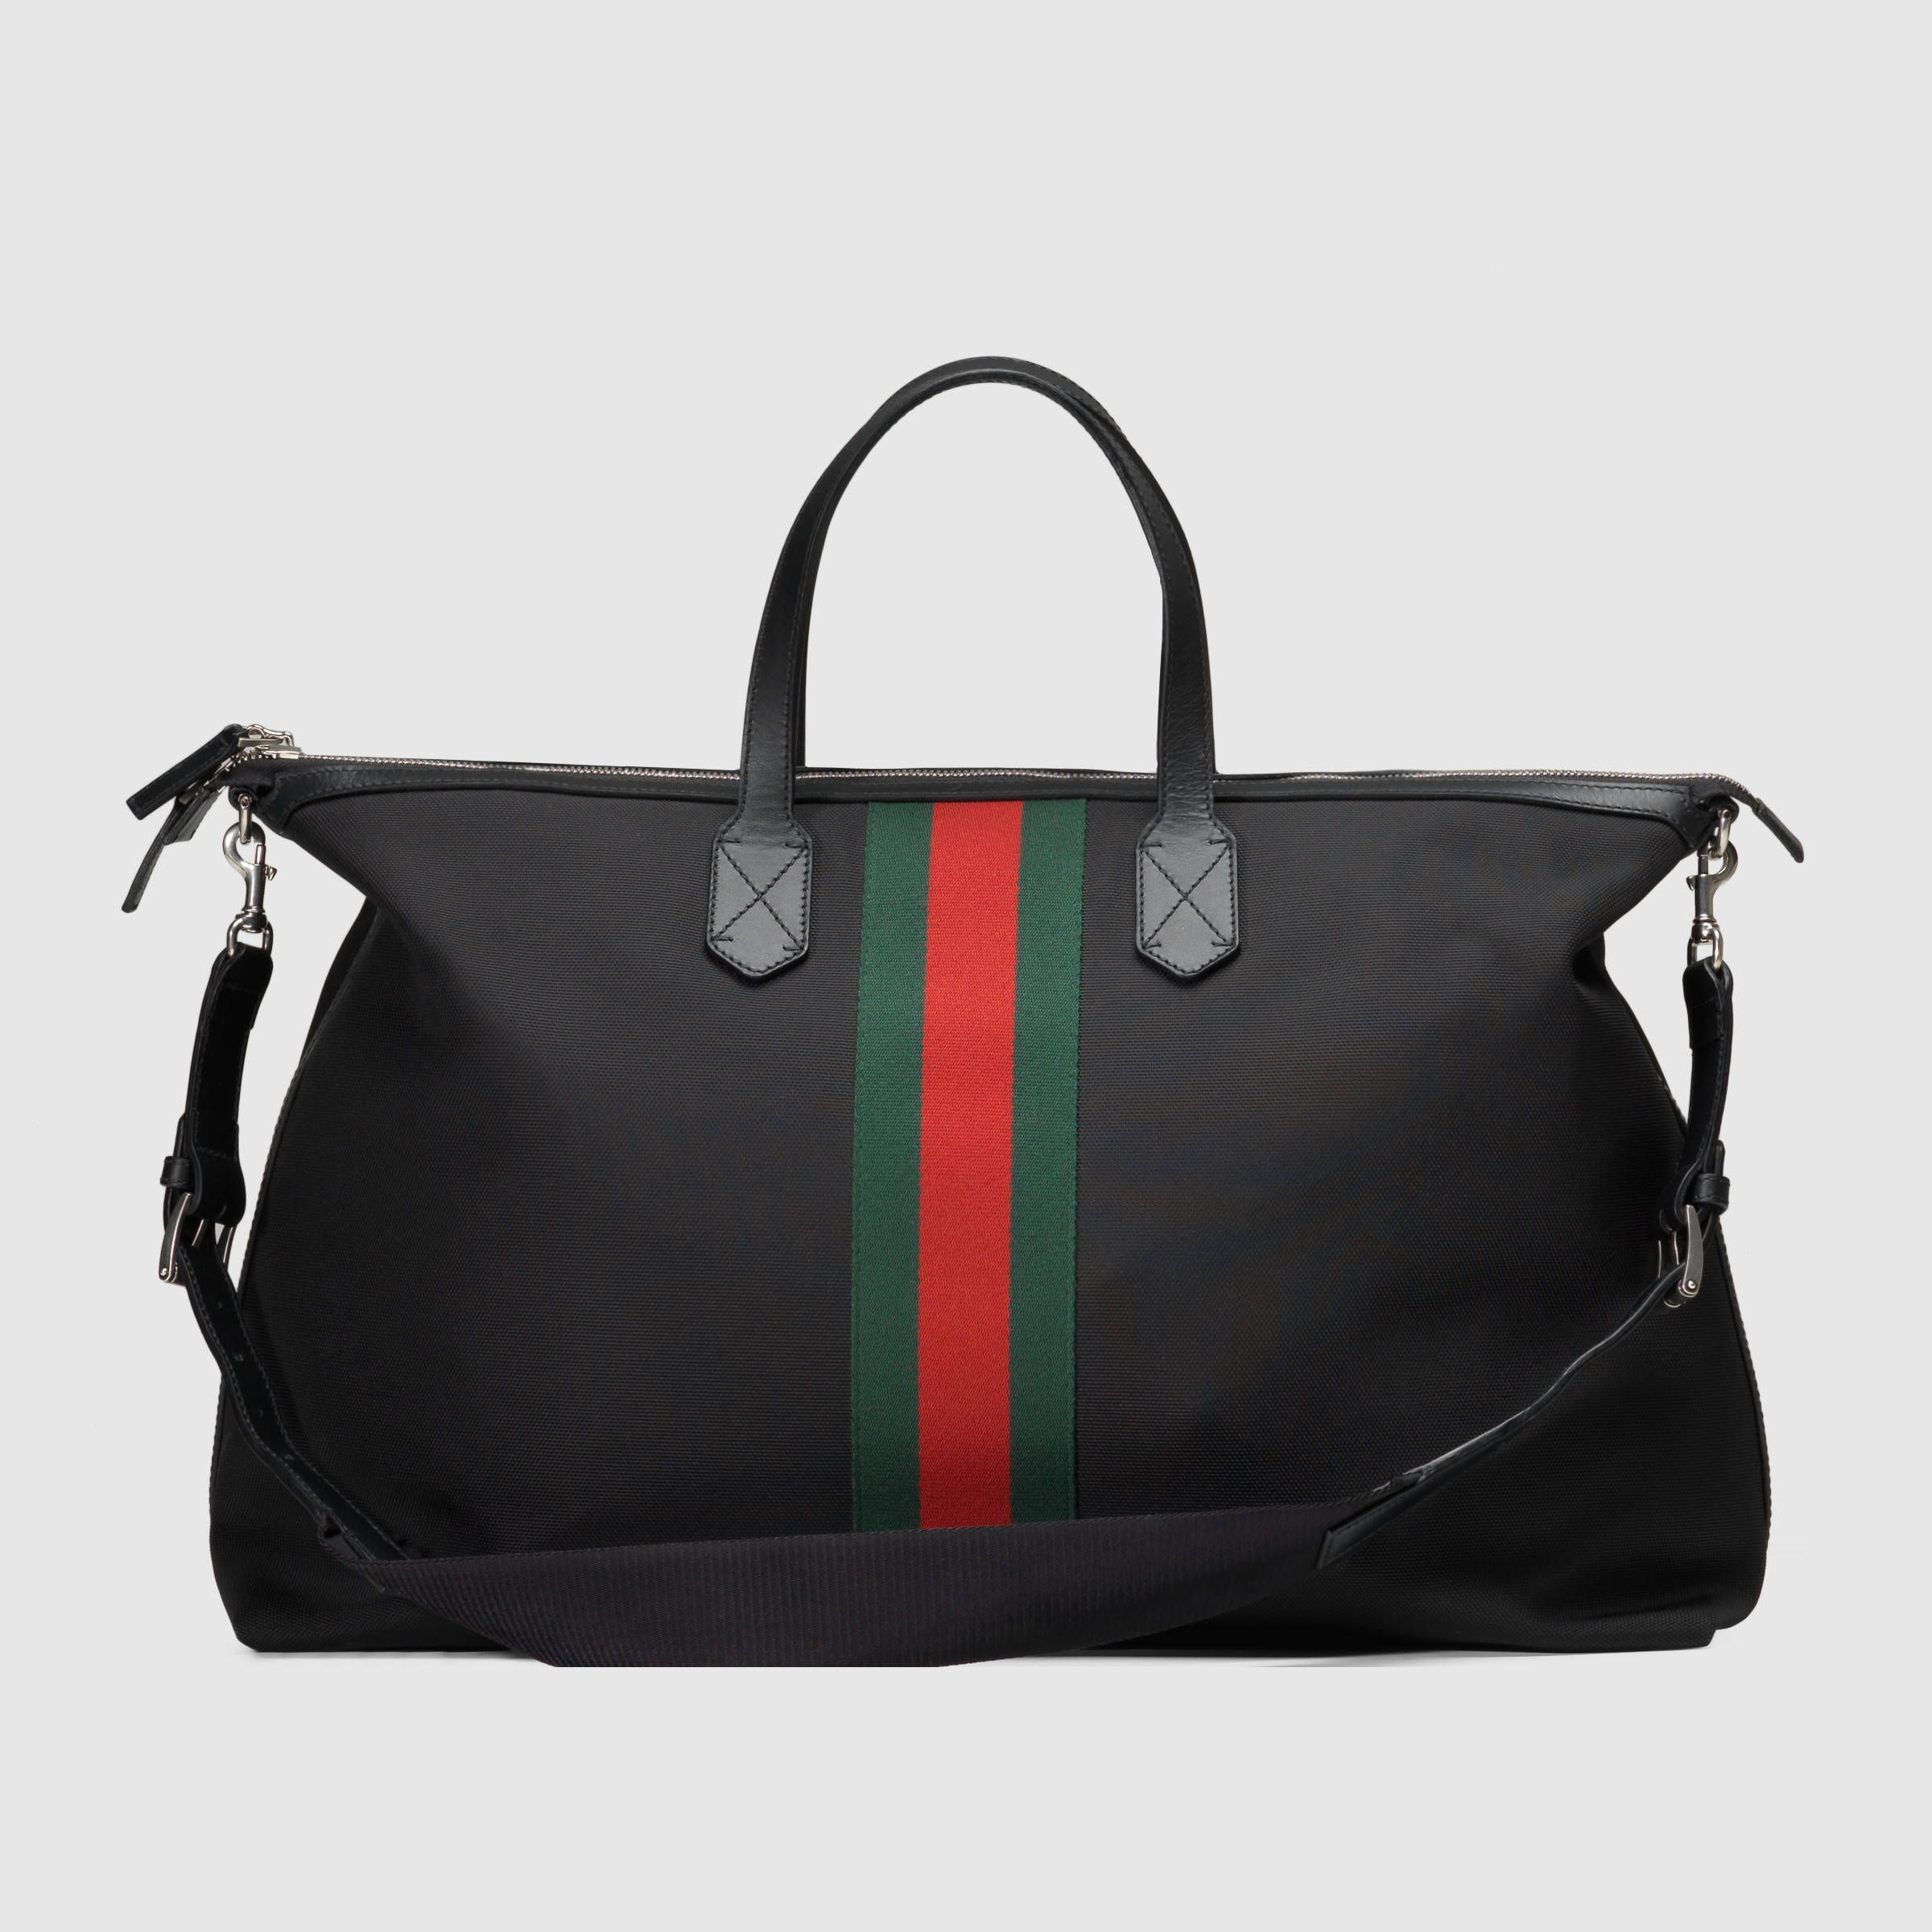 7f60d7c34 Gucci Men - Techno canvas carry-on duffle - 353406KWT7N1060 ...